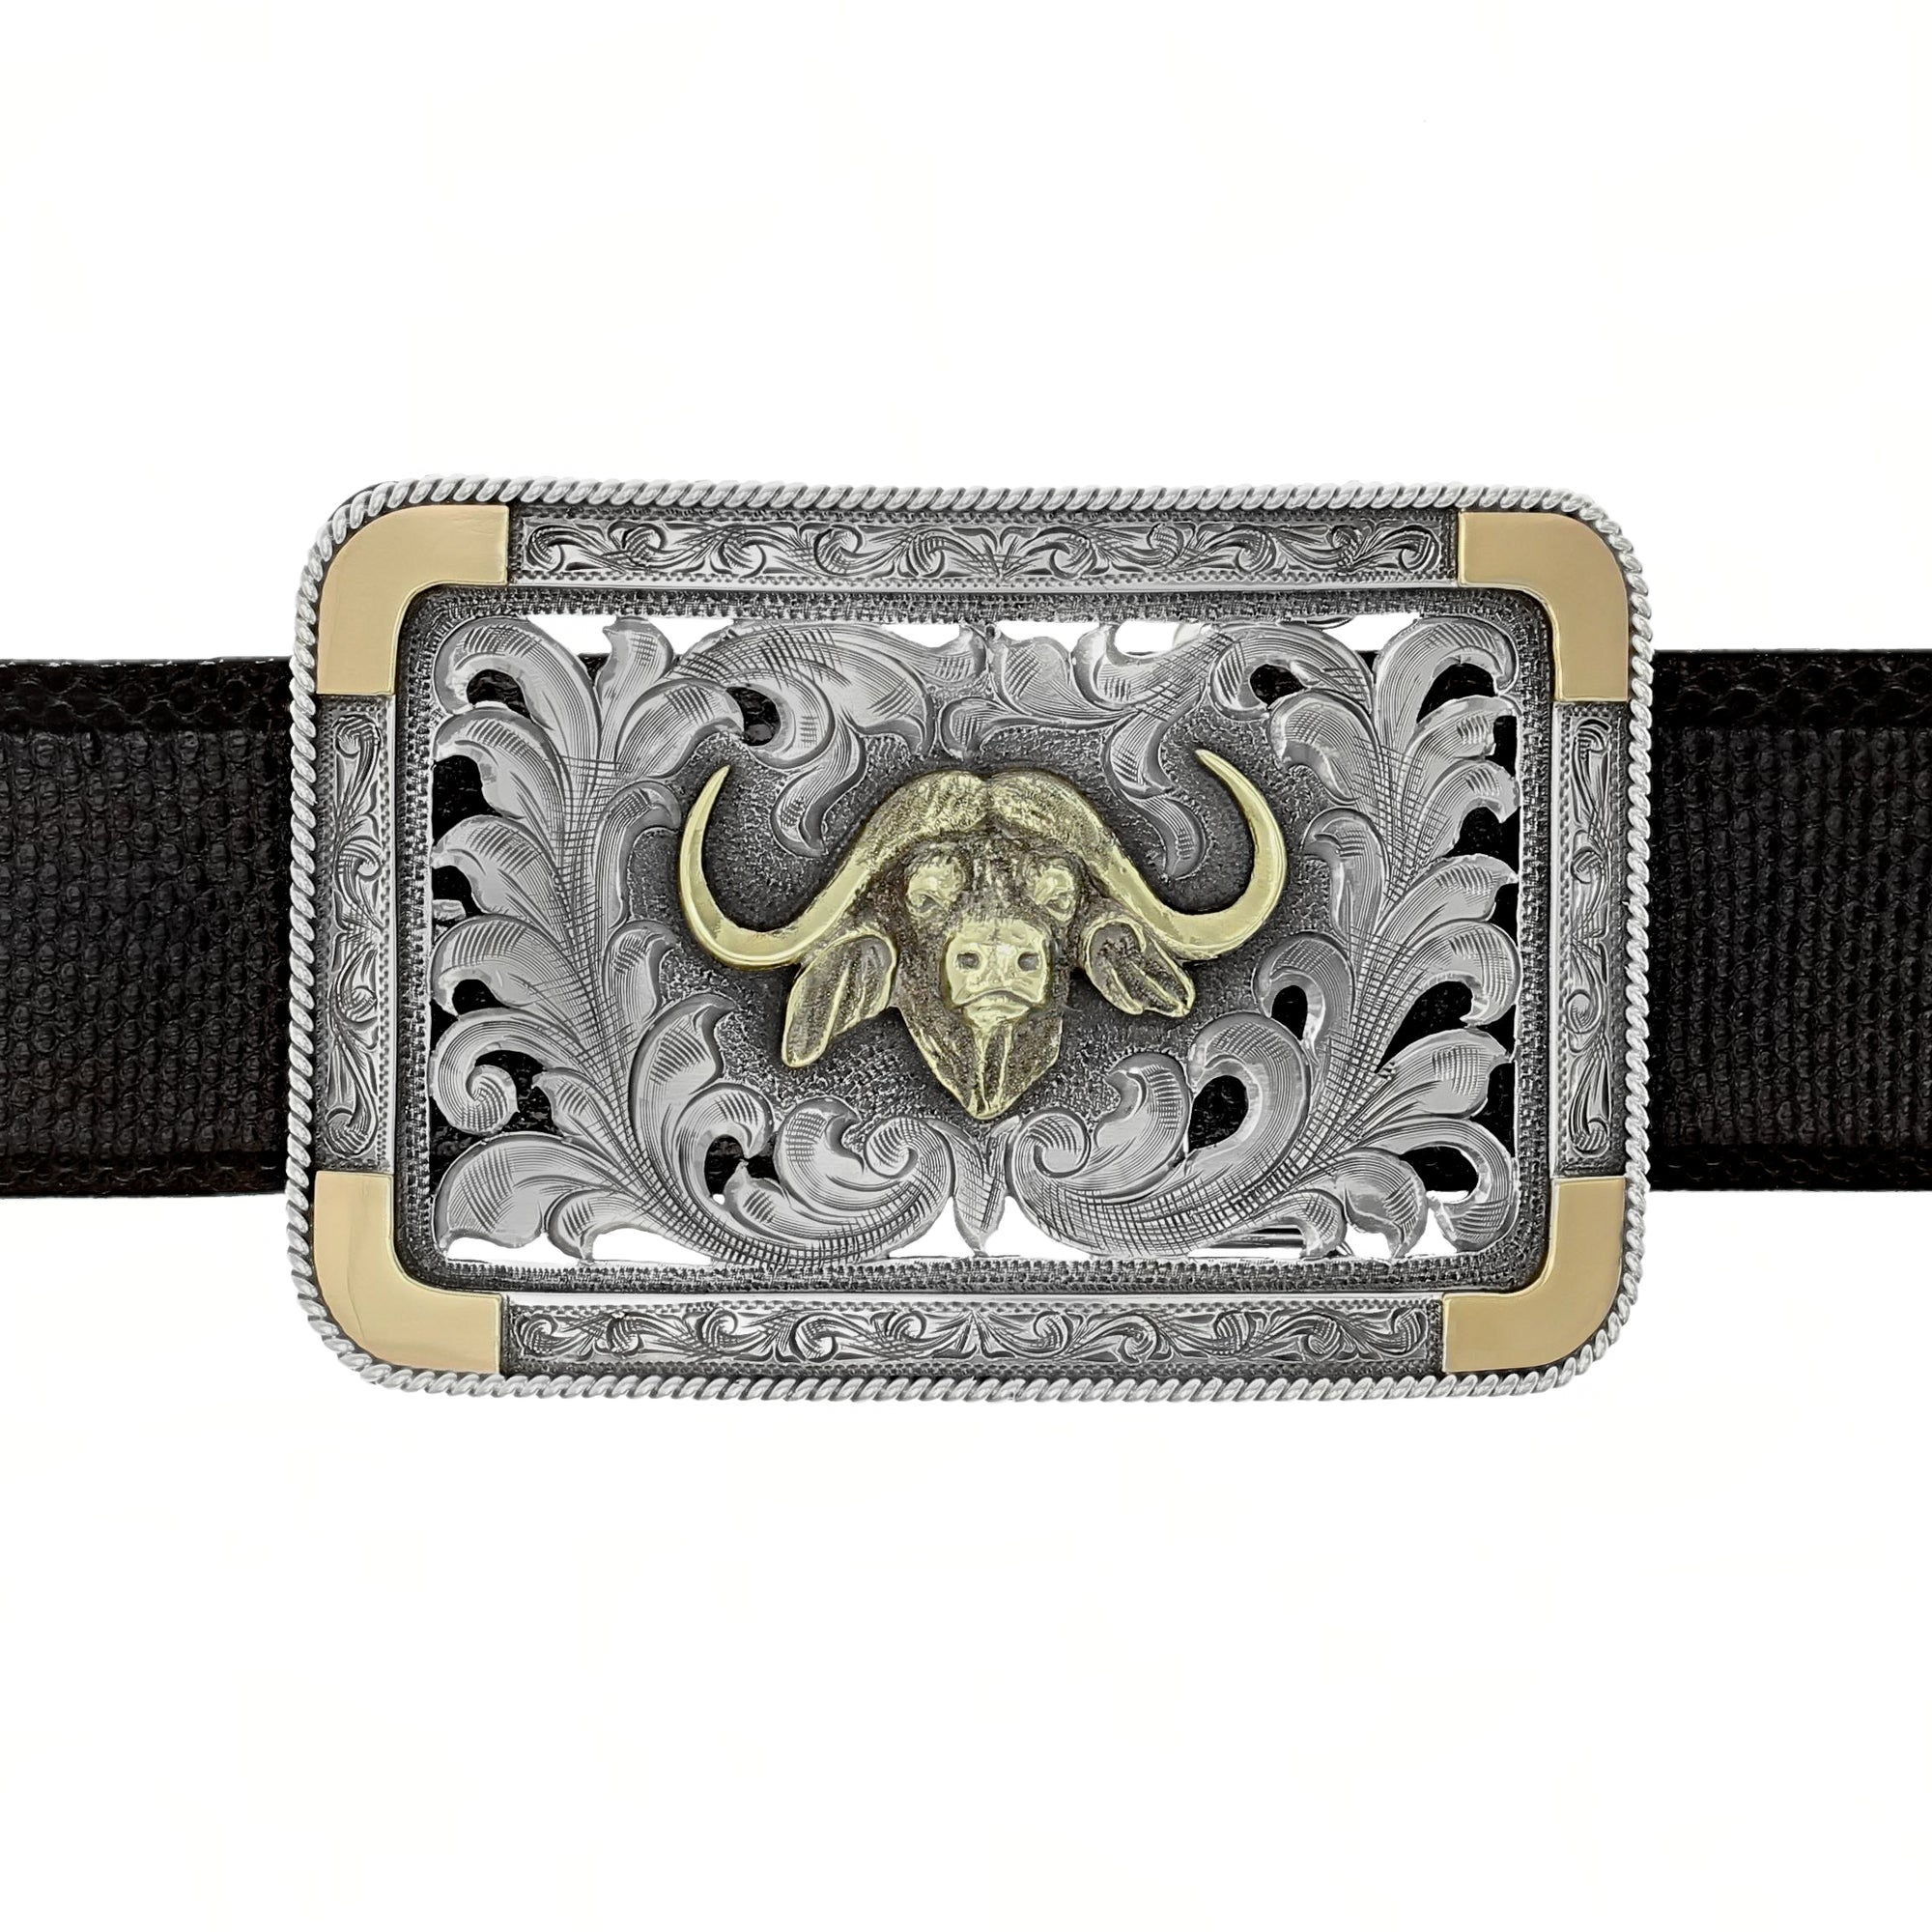 Eastland 1802 Gold Cape Buffalo Trophy Buckle